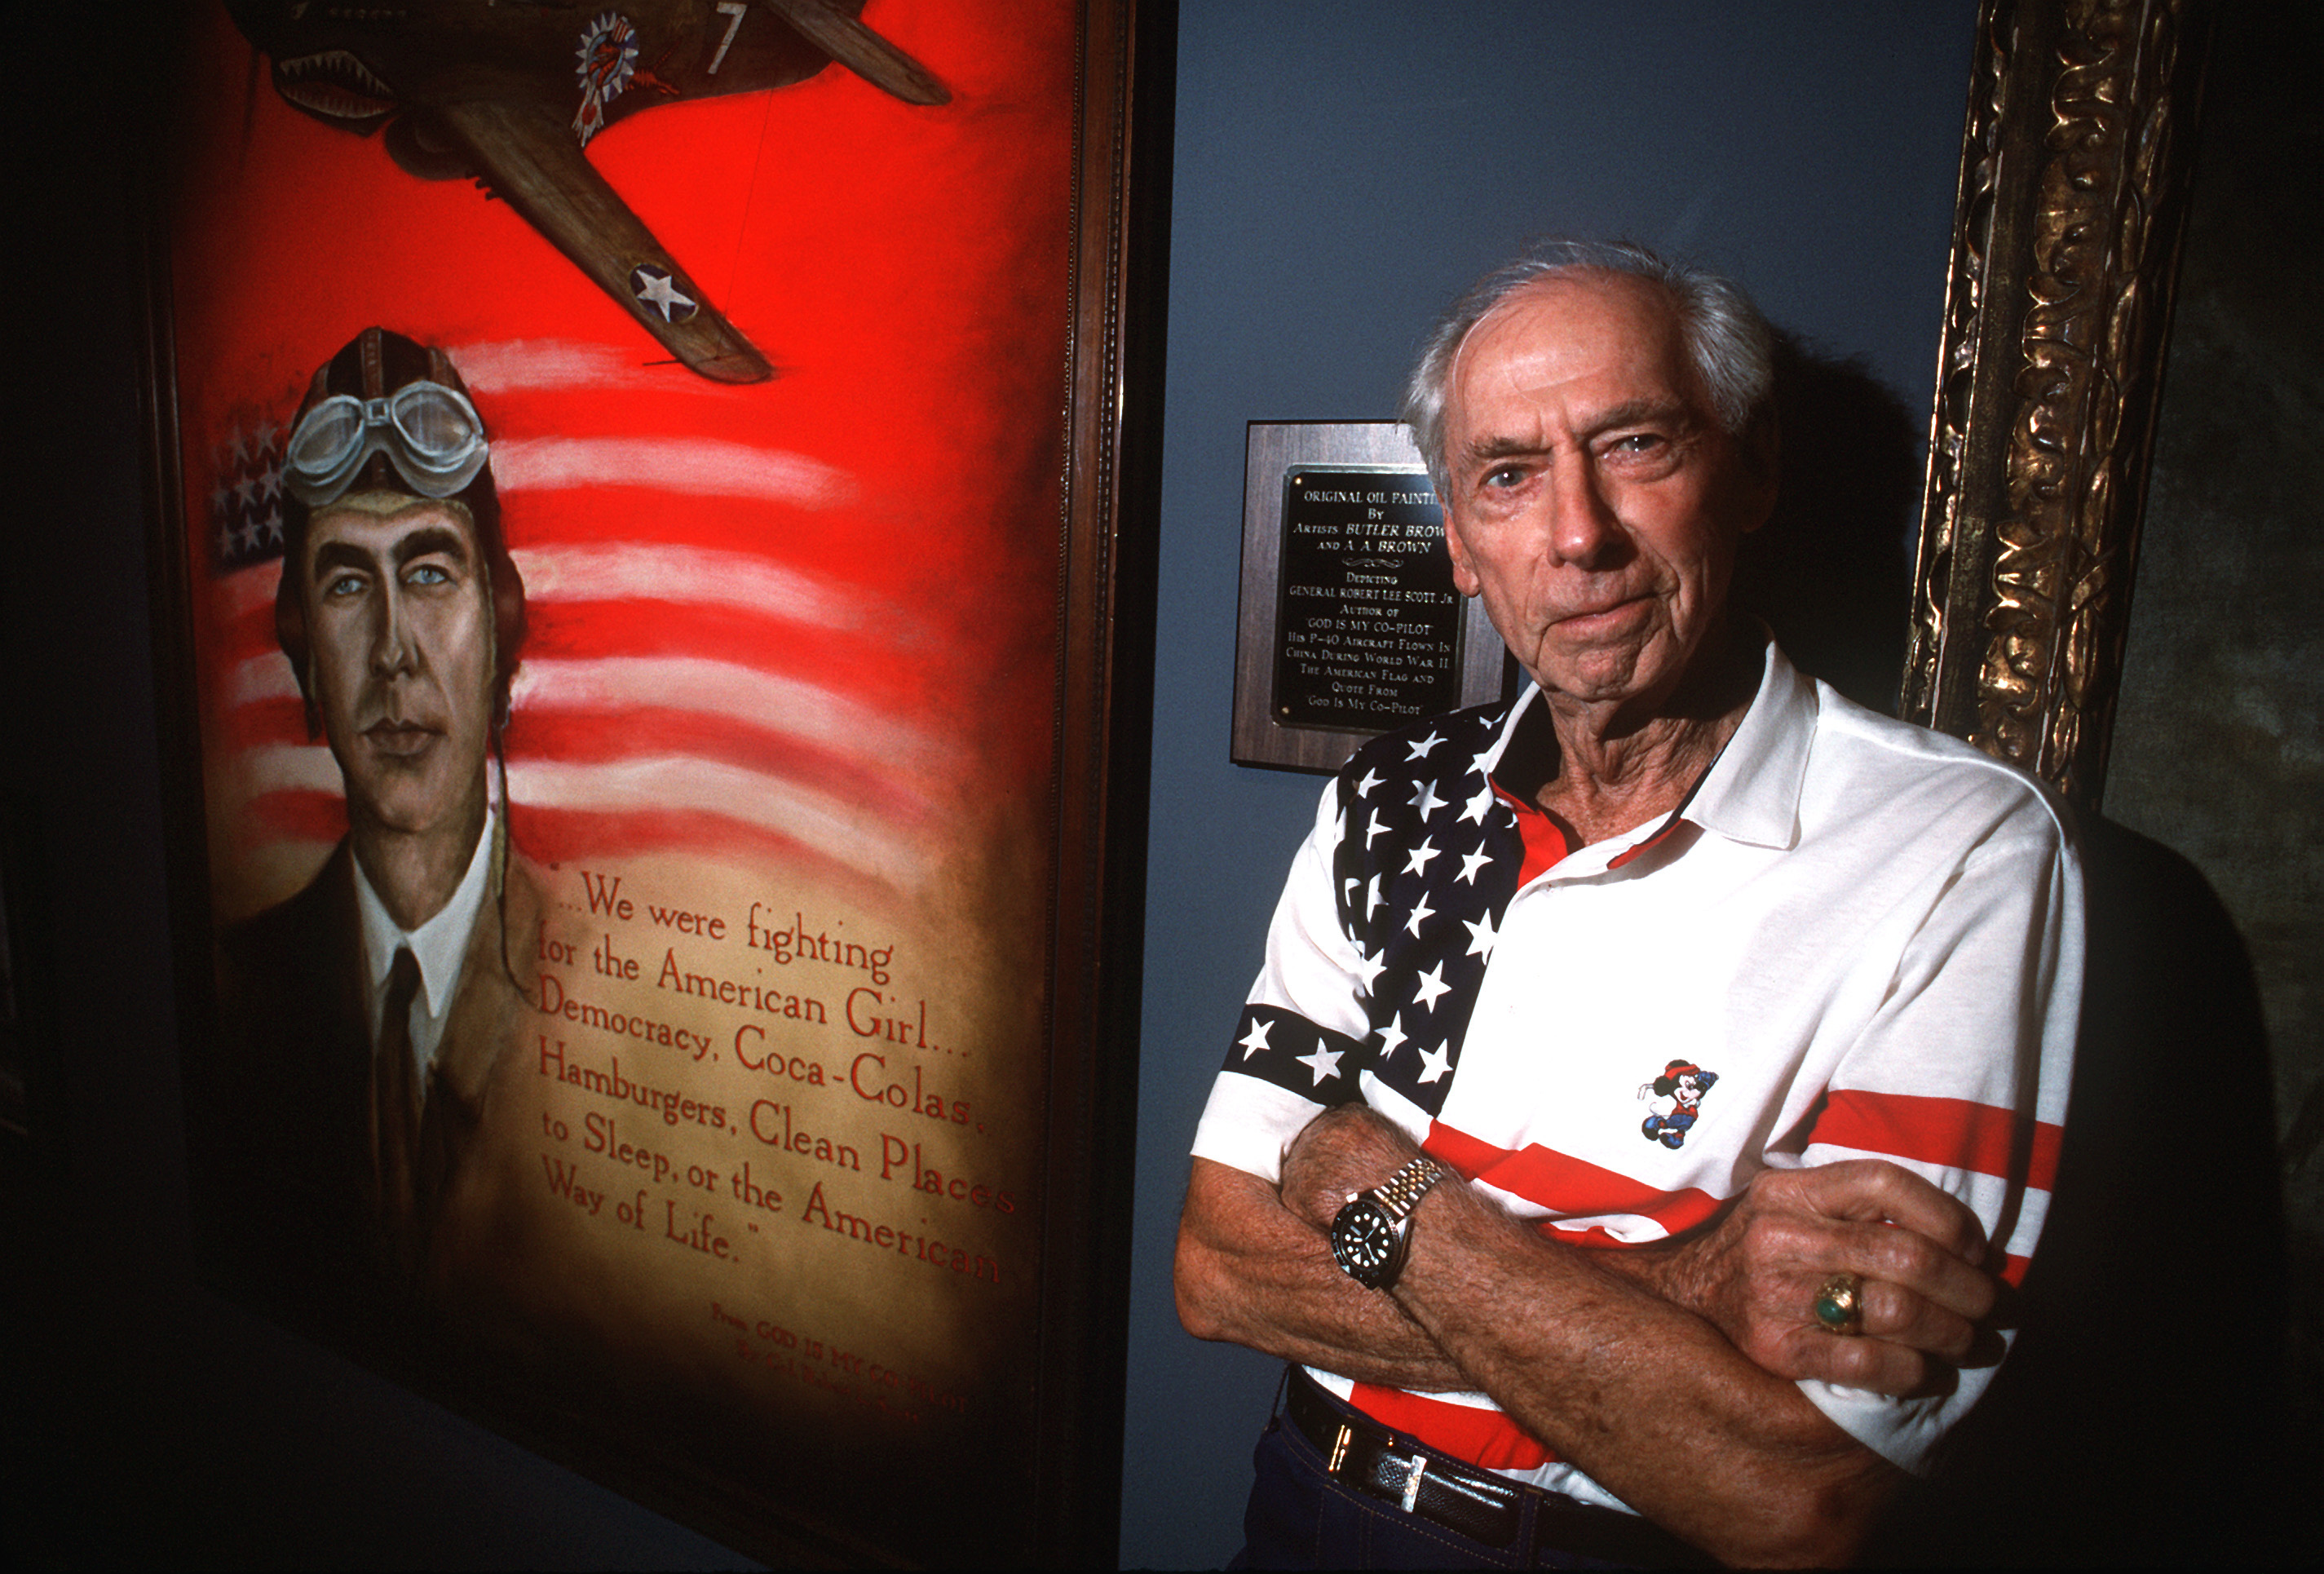 Retired Gen. Robert Lee Scott, Jr. pictured next to an original oil painting of himself.